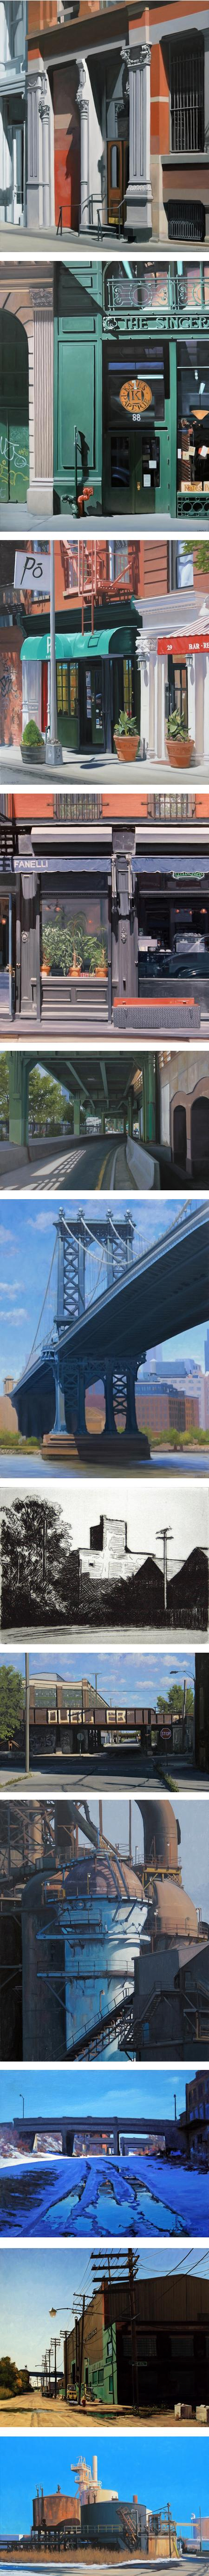 Stephen Magsig, cityscape and industrial landscape paintings, NYC and Detriot